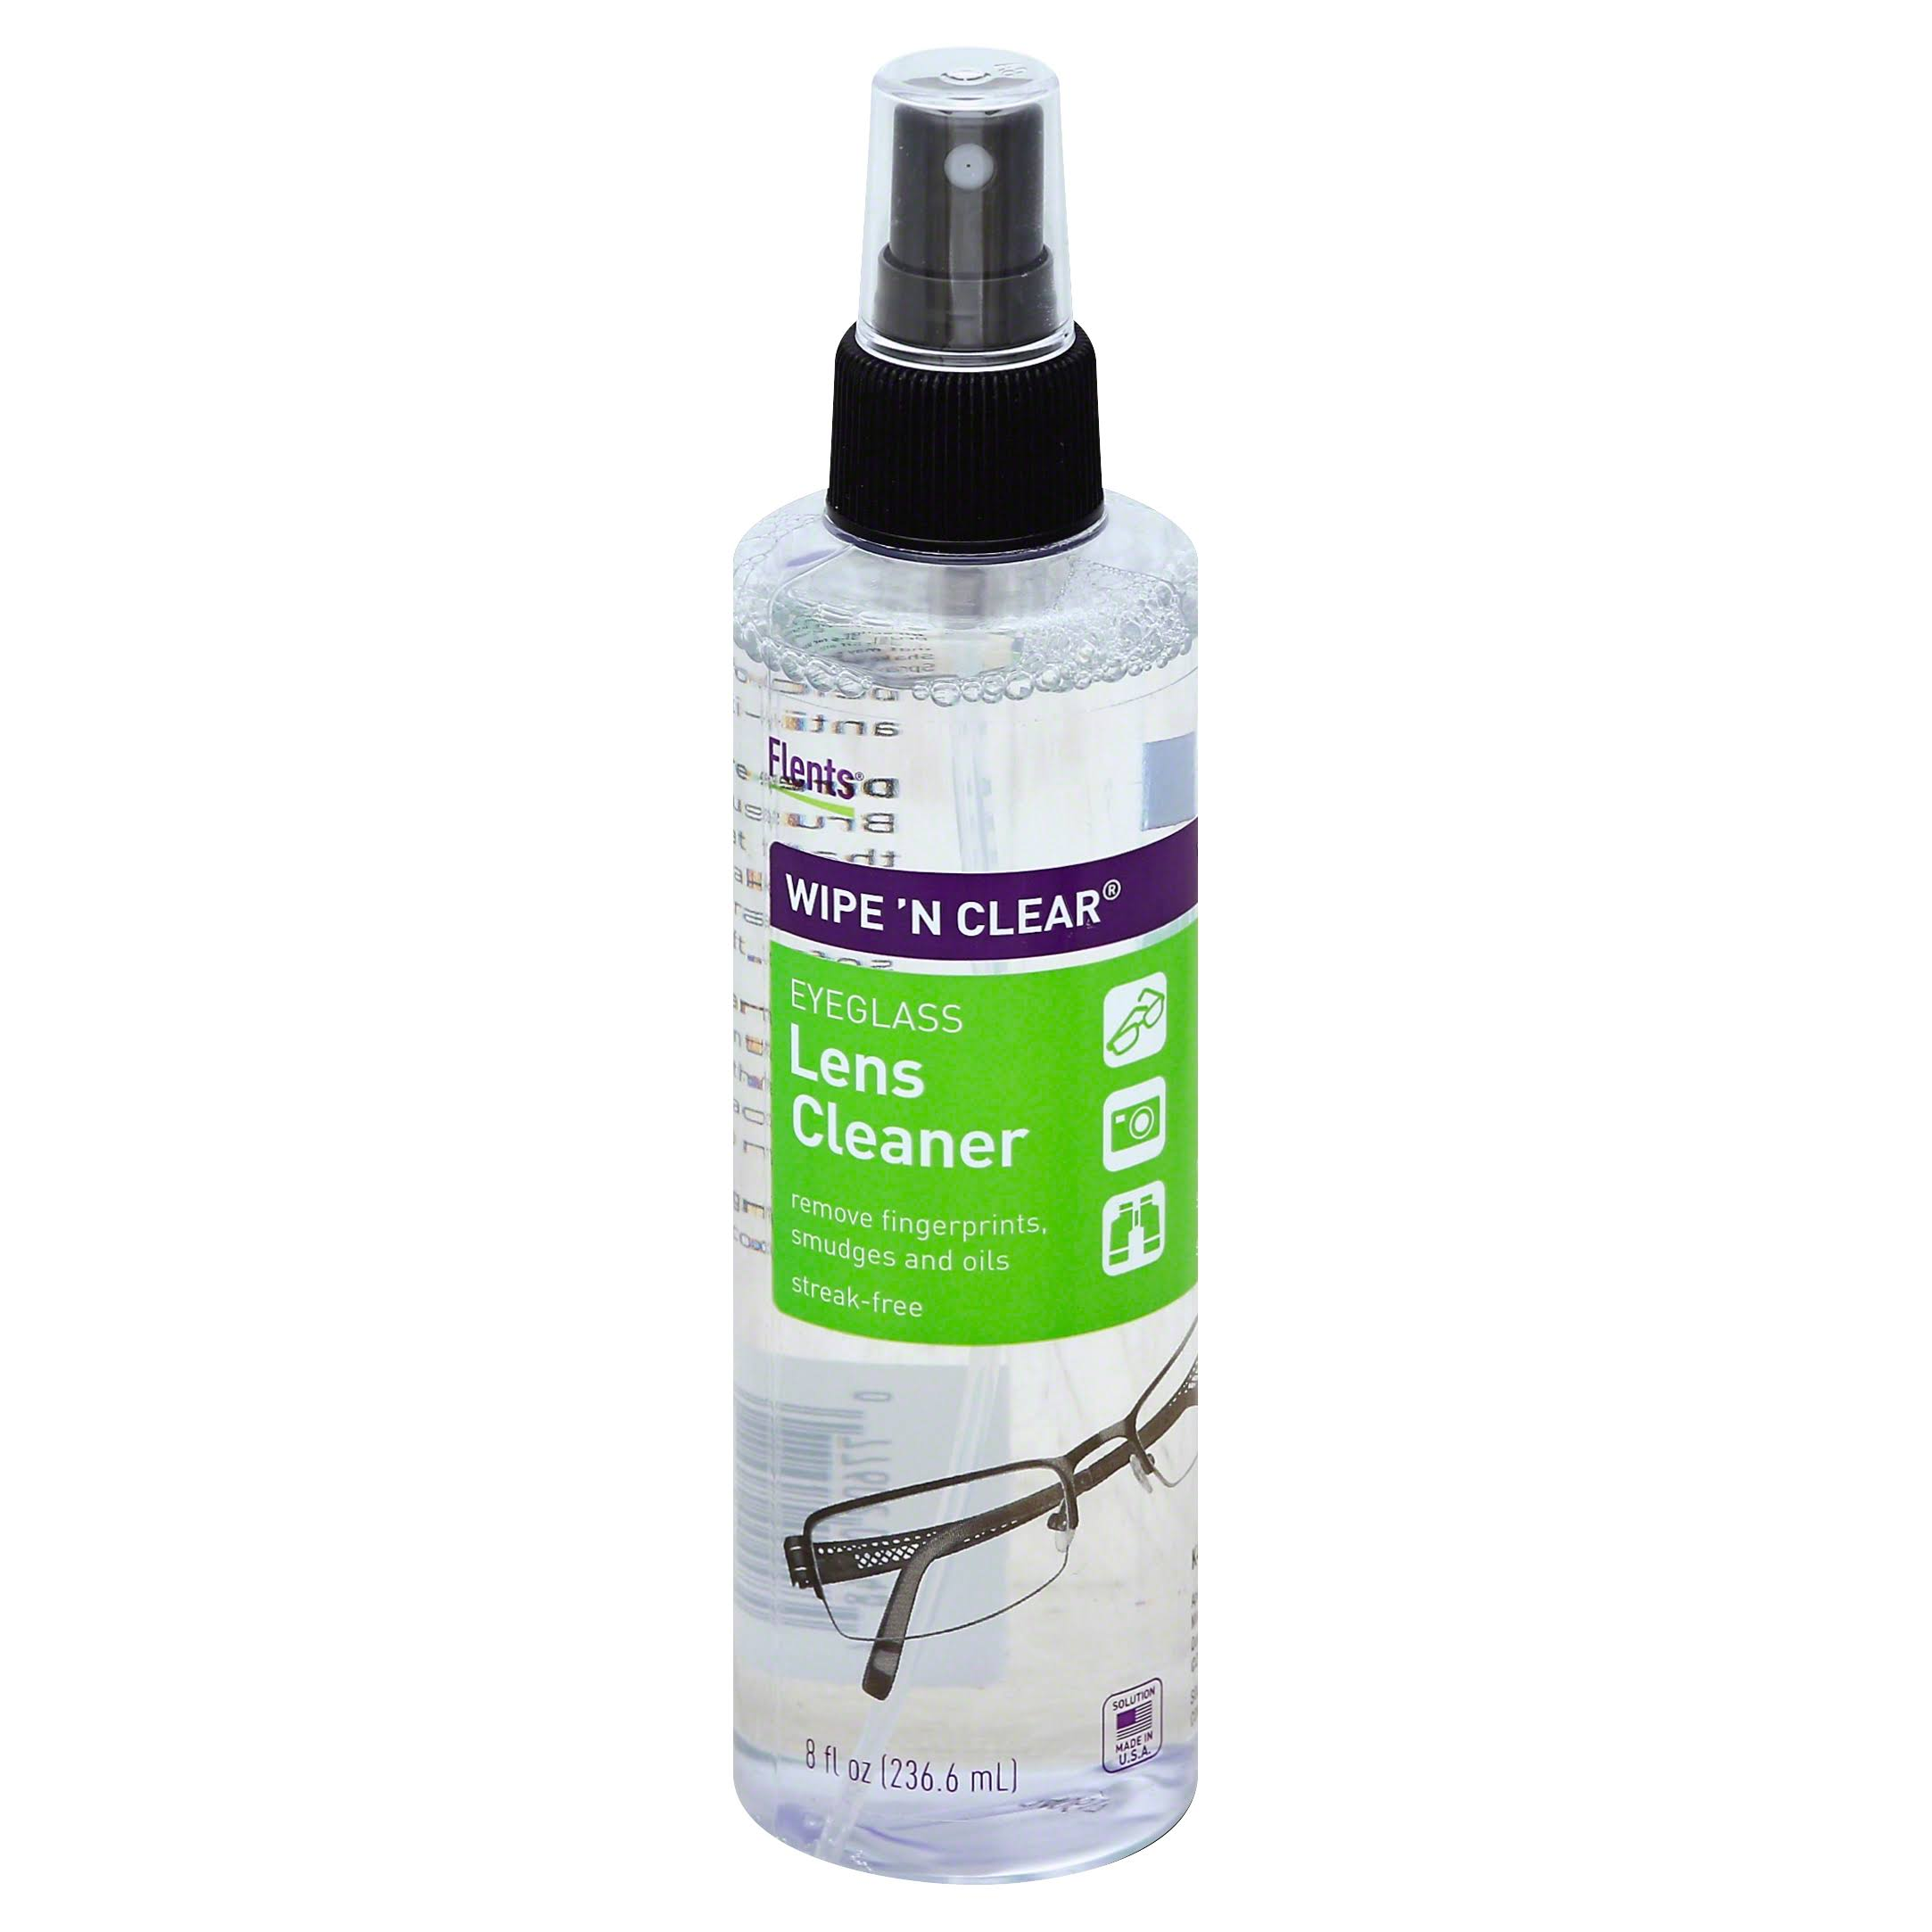 Flents Wipe 'N Clear Eyeglass Lens Cleaner - 8oz